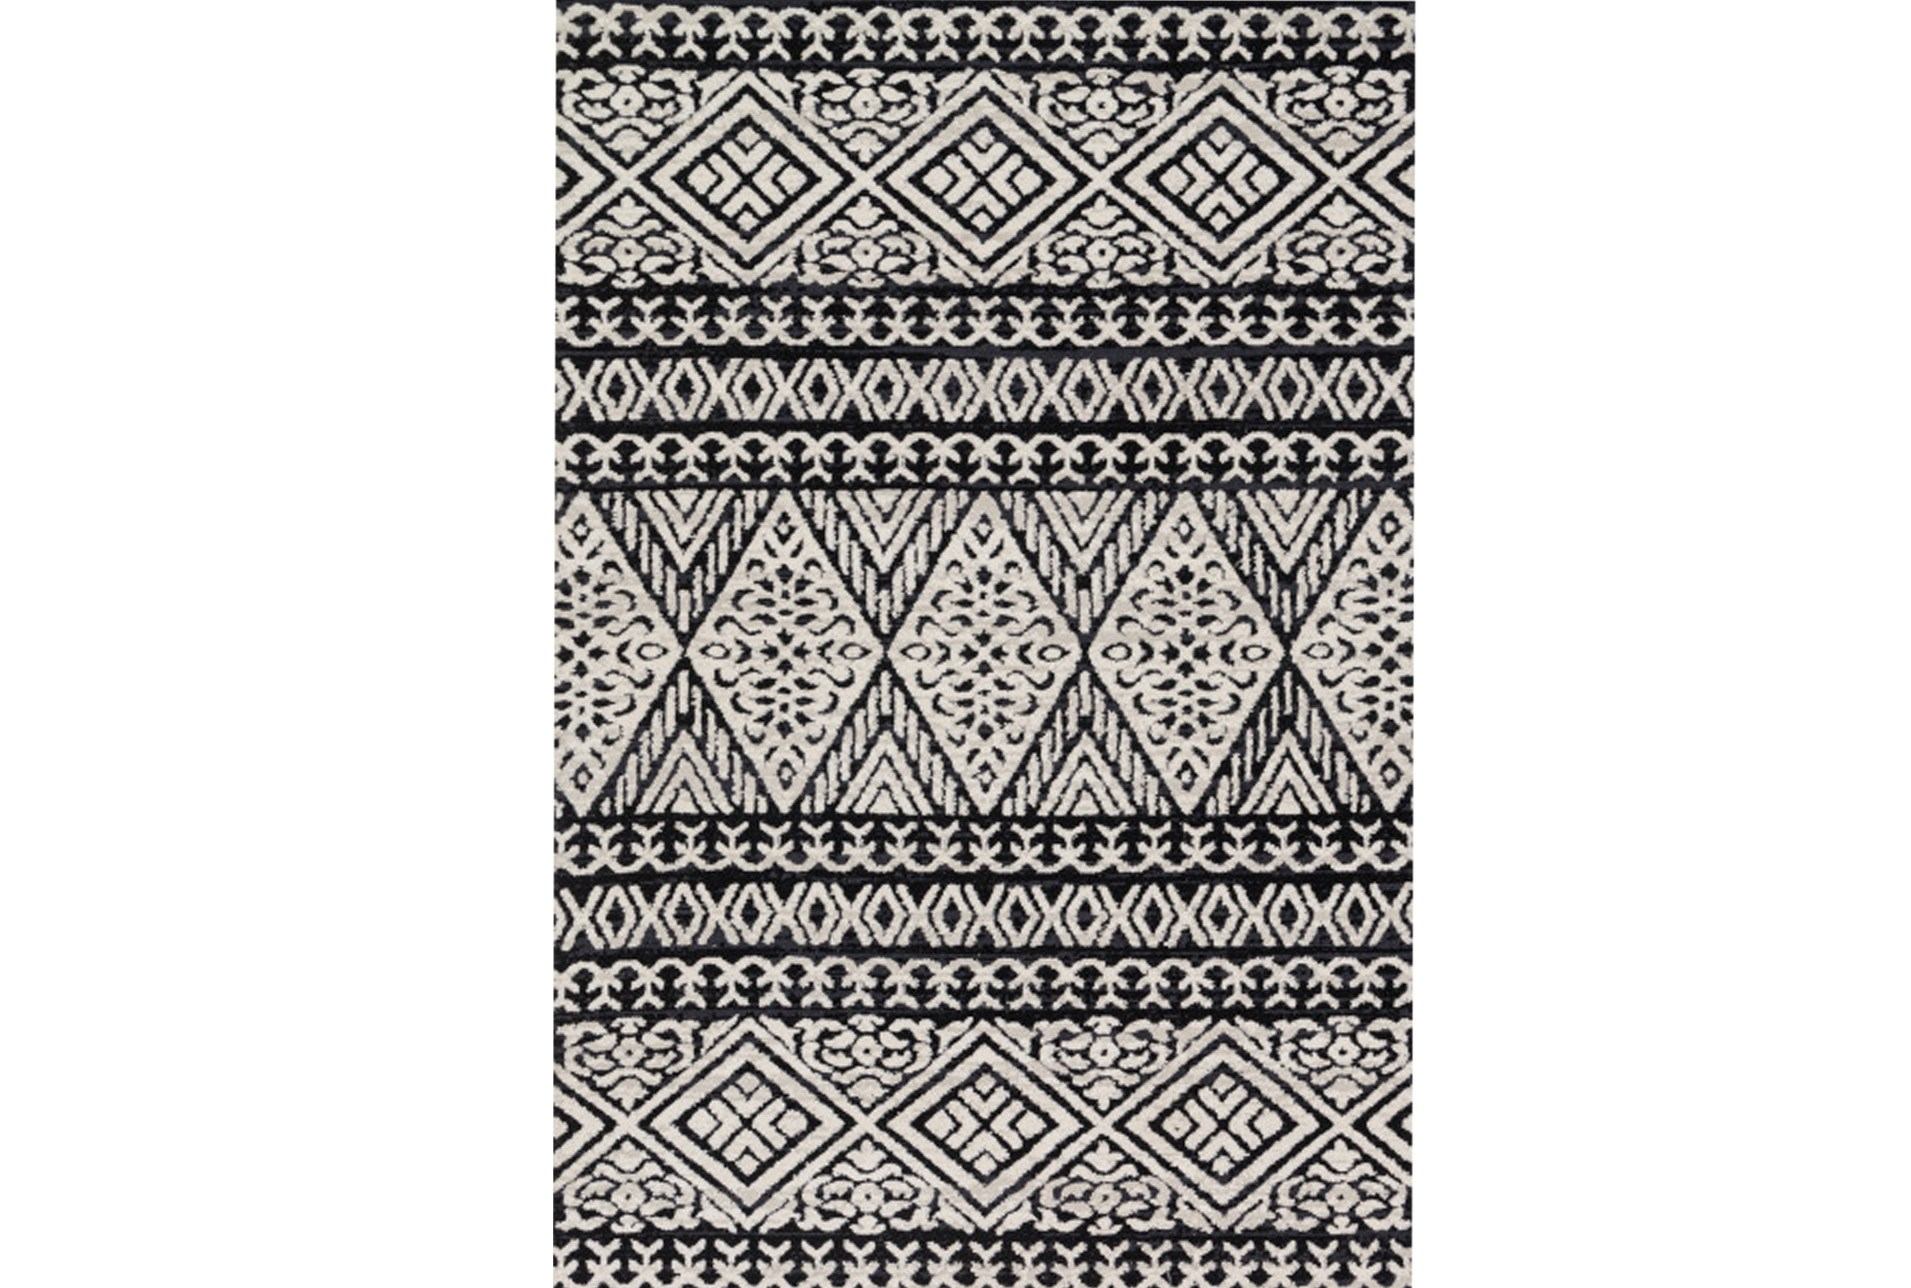 60x90 Rug Magnolia Home Lotus Diamond Black Silver By Joanna Gaines